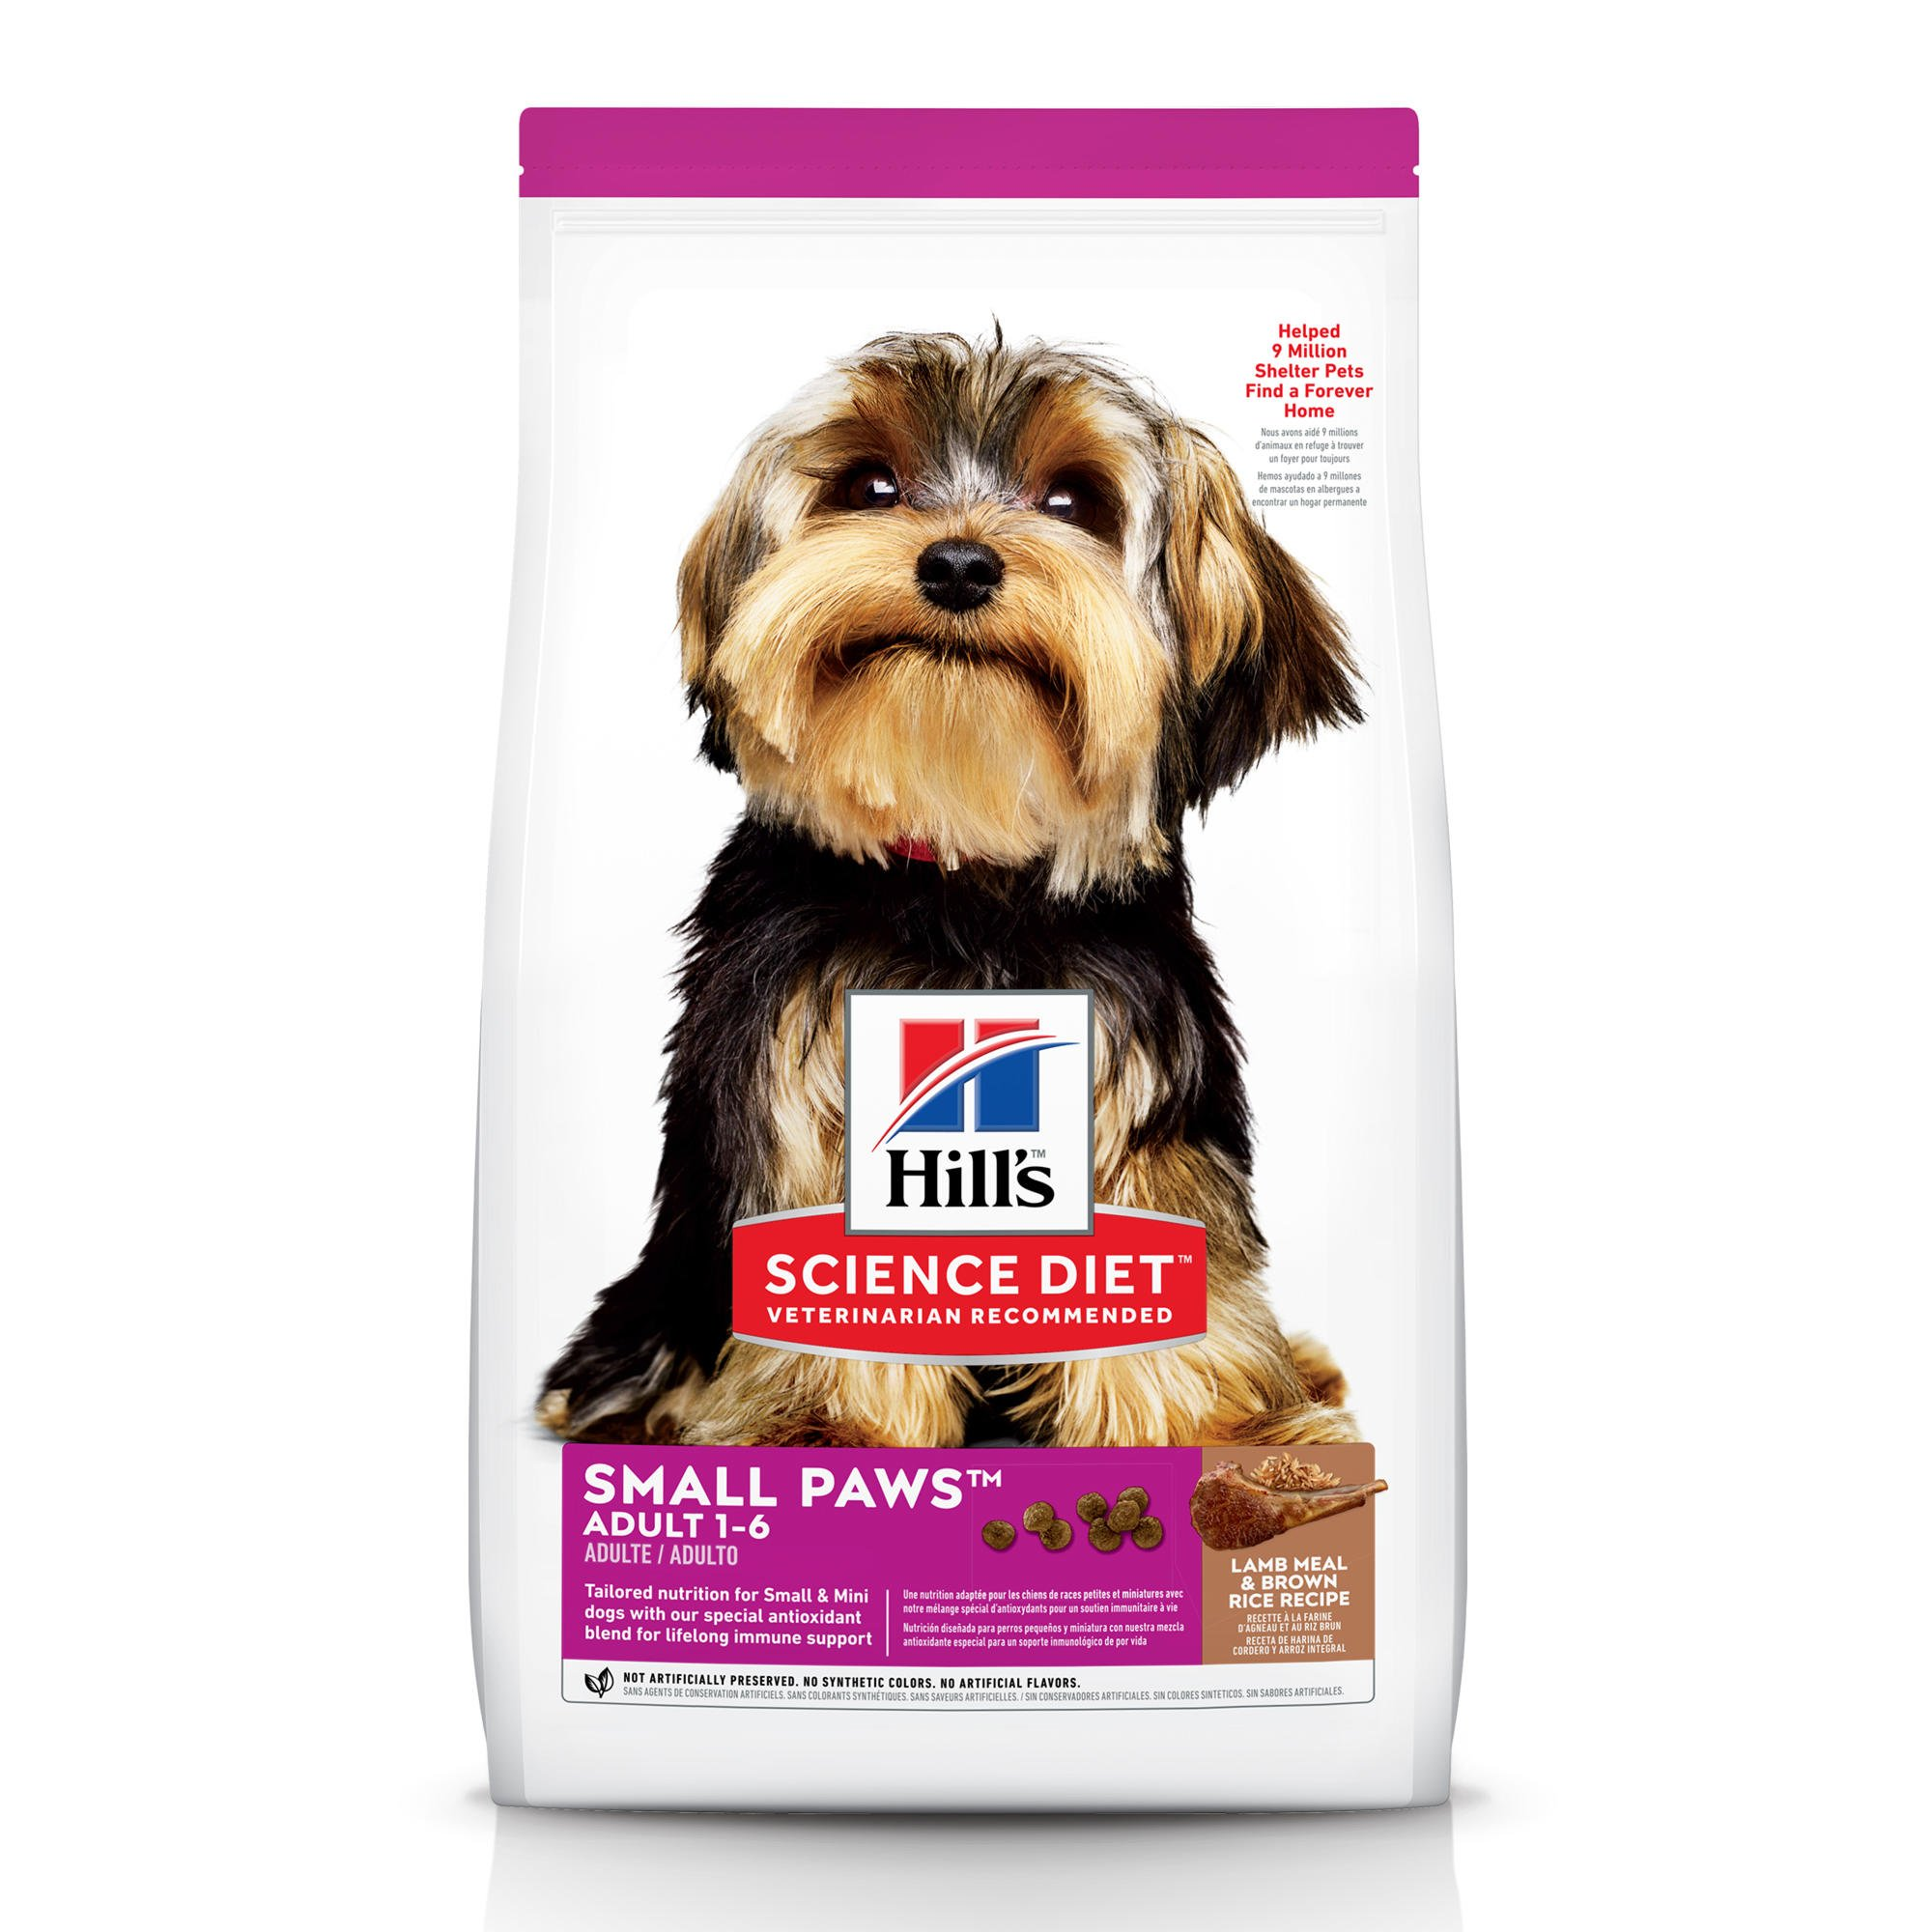 Hill's Science Diet Adult Small Paws Lamb Meal & Brown Rice Recipe Dry Dog Food, 4.5 lbs., Bag